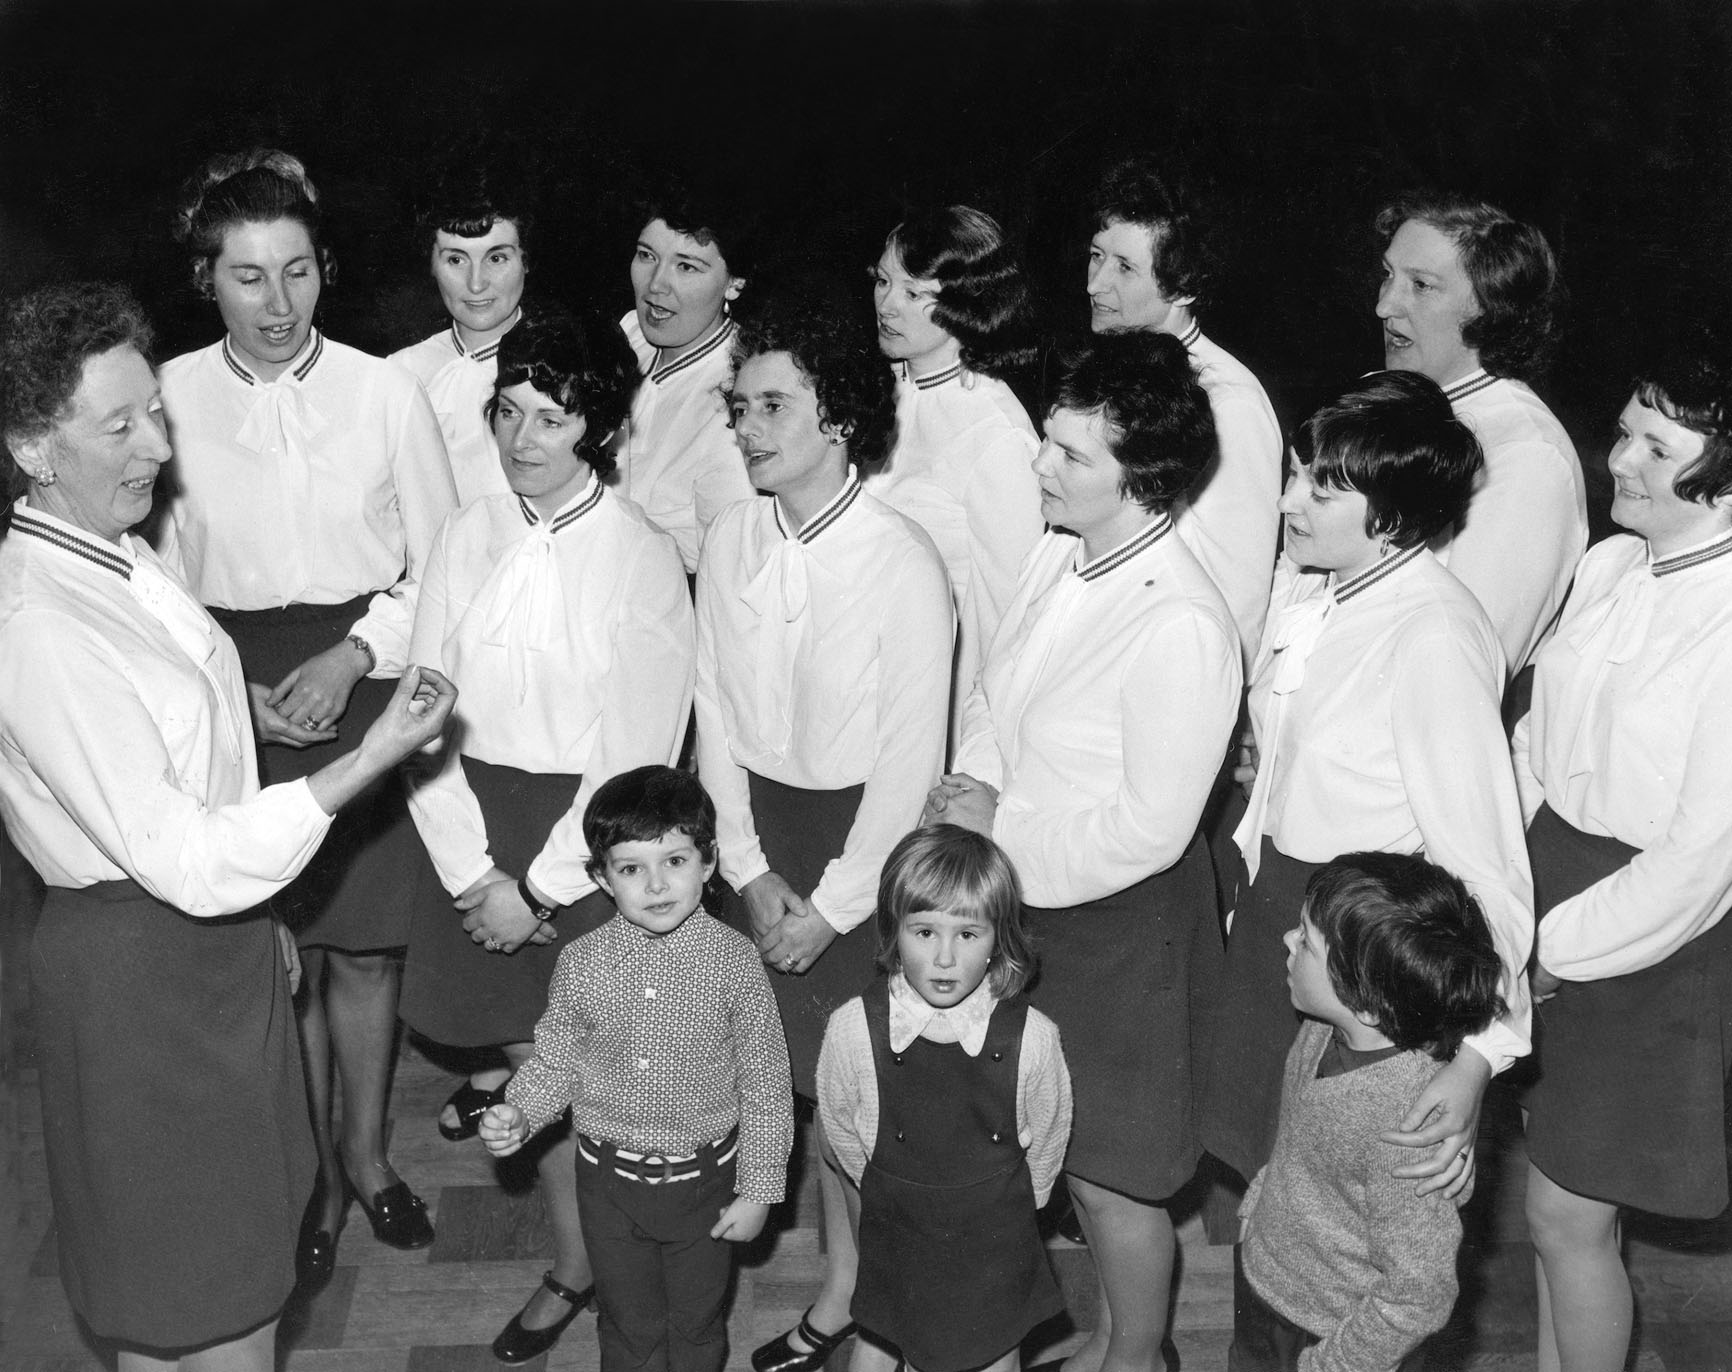 ON SONG: Mrs Netta Thom conducts the Young Wives' Group Choir of Kincorth South St Nicholas Church, Aberdeen, at a rehearsal in March 1973.